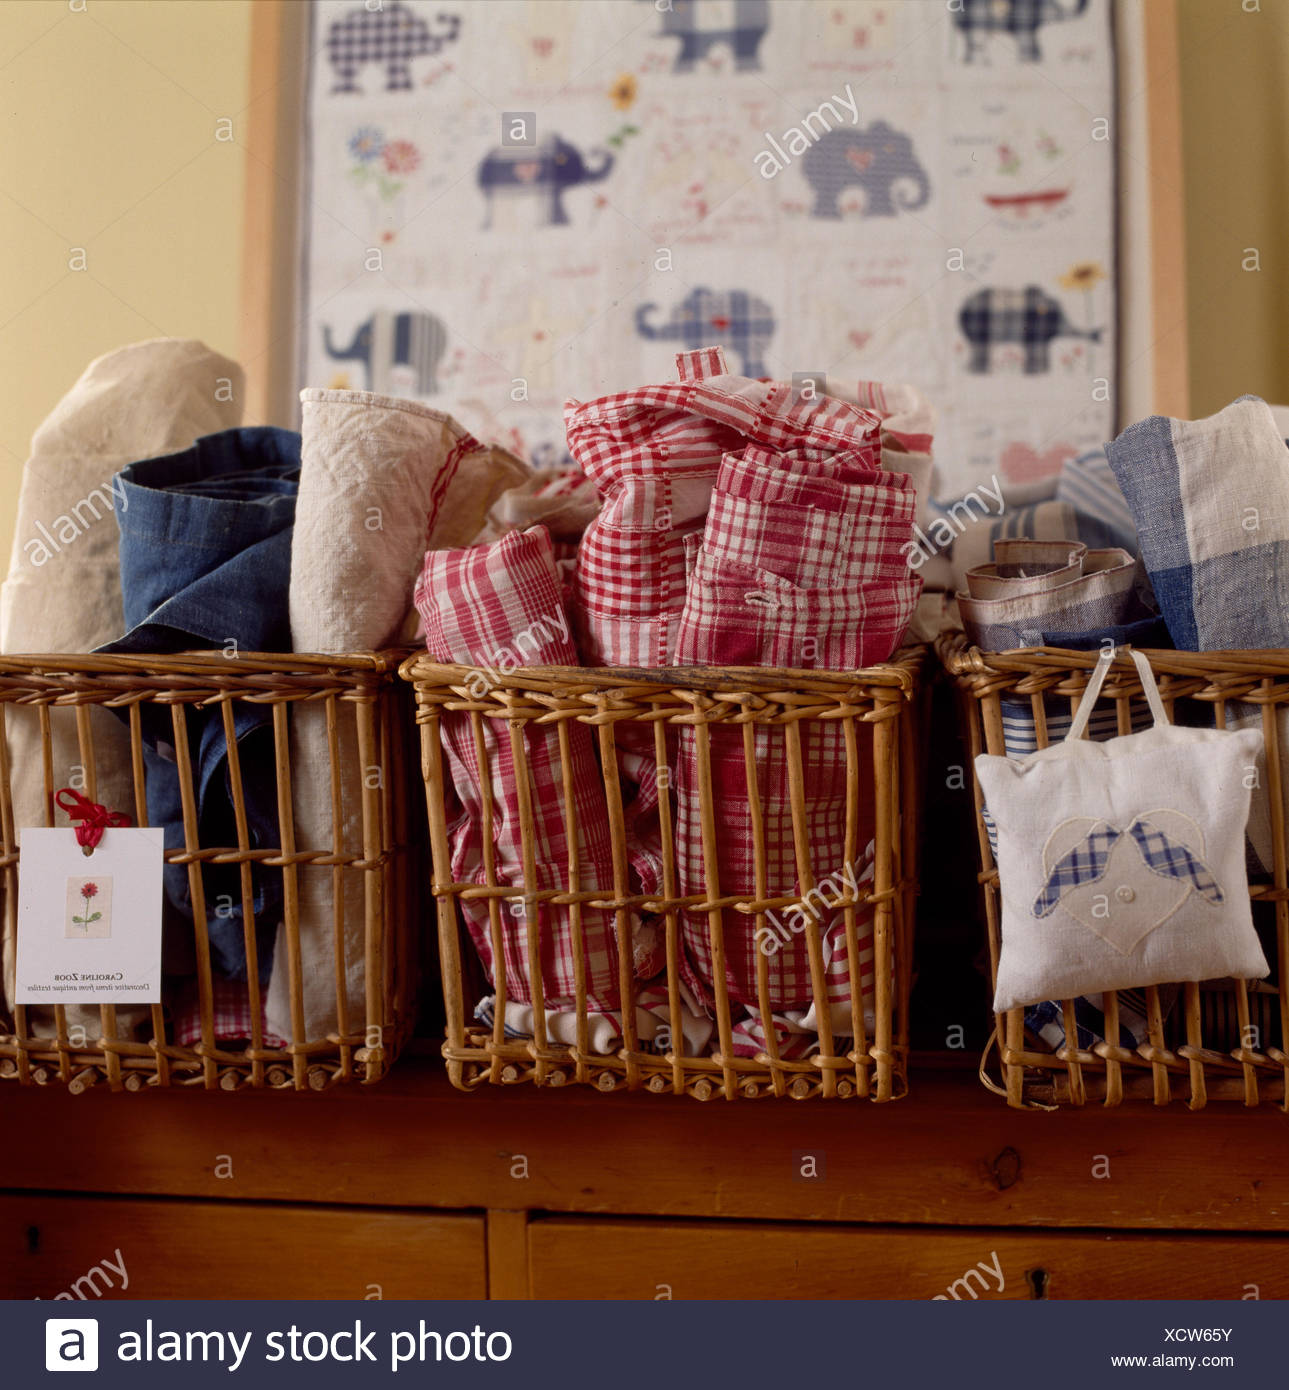 Baskets storing rolled towels and red checked tea towels - Stock Image